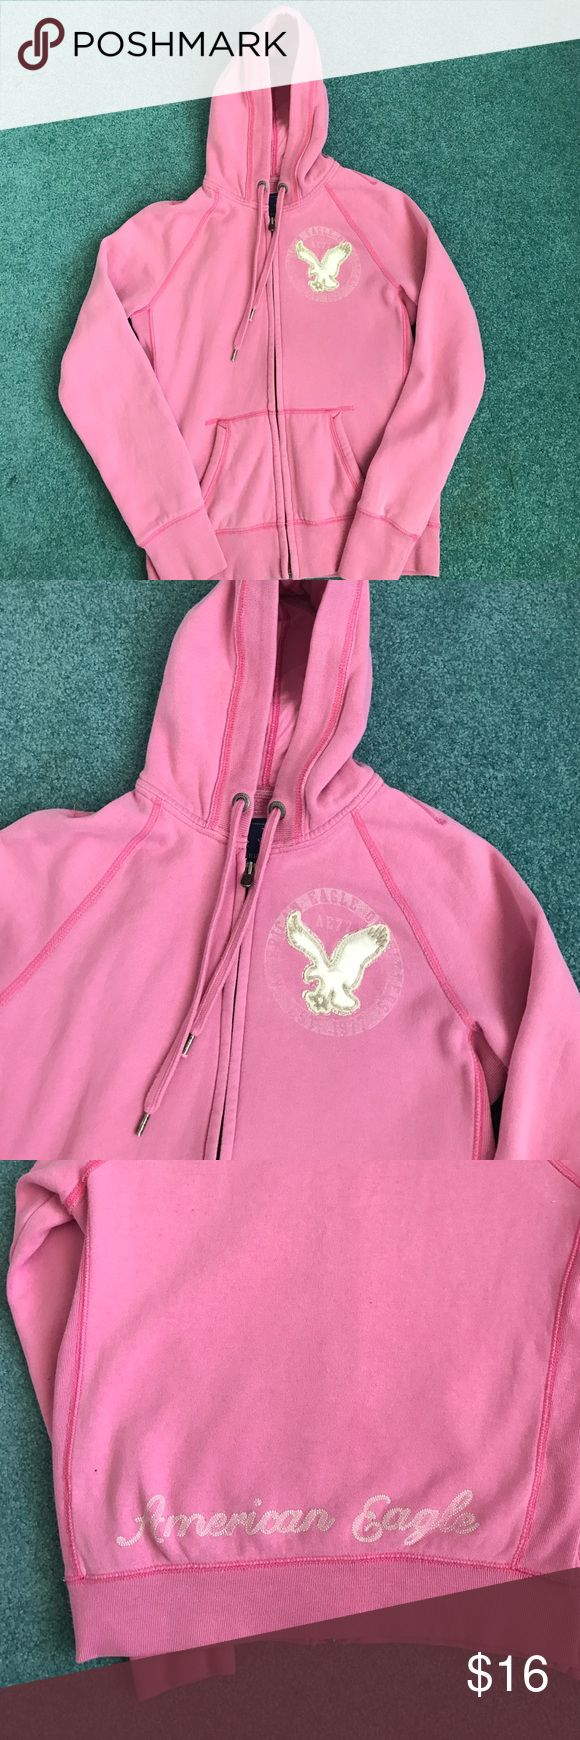 American Eagle Juniors Pink zip up hoodie small This is an American Eagle Juniors Pink zip up hoodie size small. It is used but still in good condition. It has an eagle on the left chest, and says American Eagle across the bottom in the back. It has been washed. It never put in the dryer. It's made of 80% cotton and 20% polyester. American Eagle Outfitters Tops Sweatshirts & Hoodies